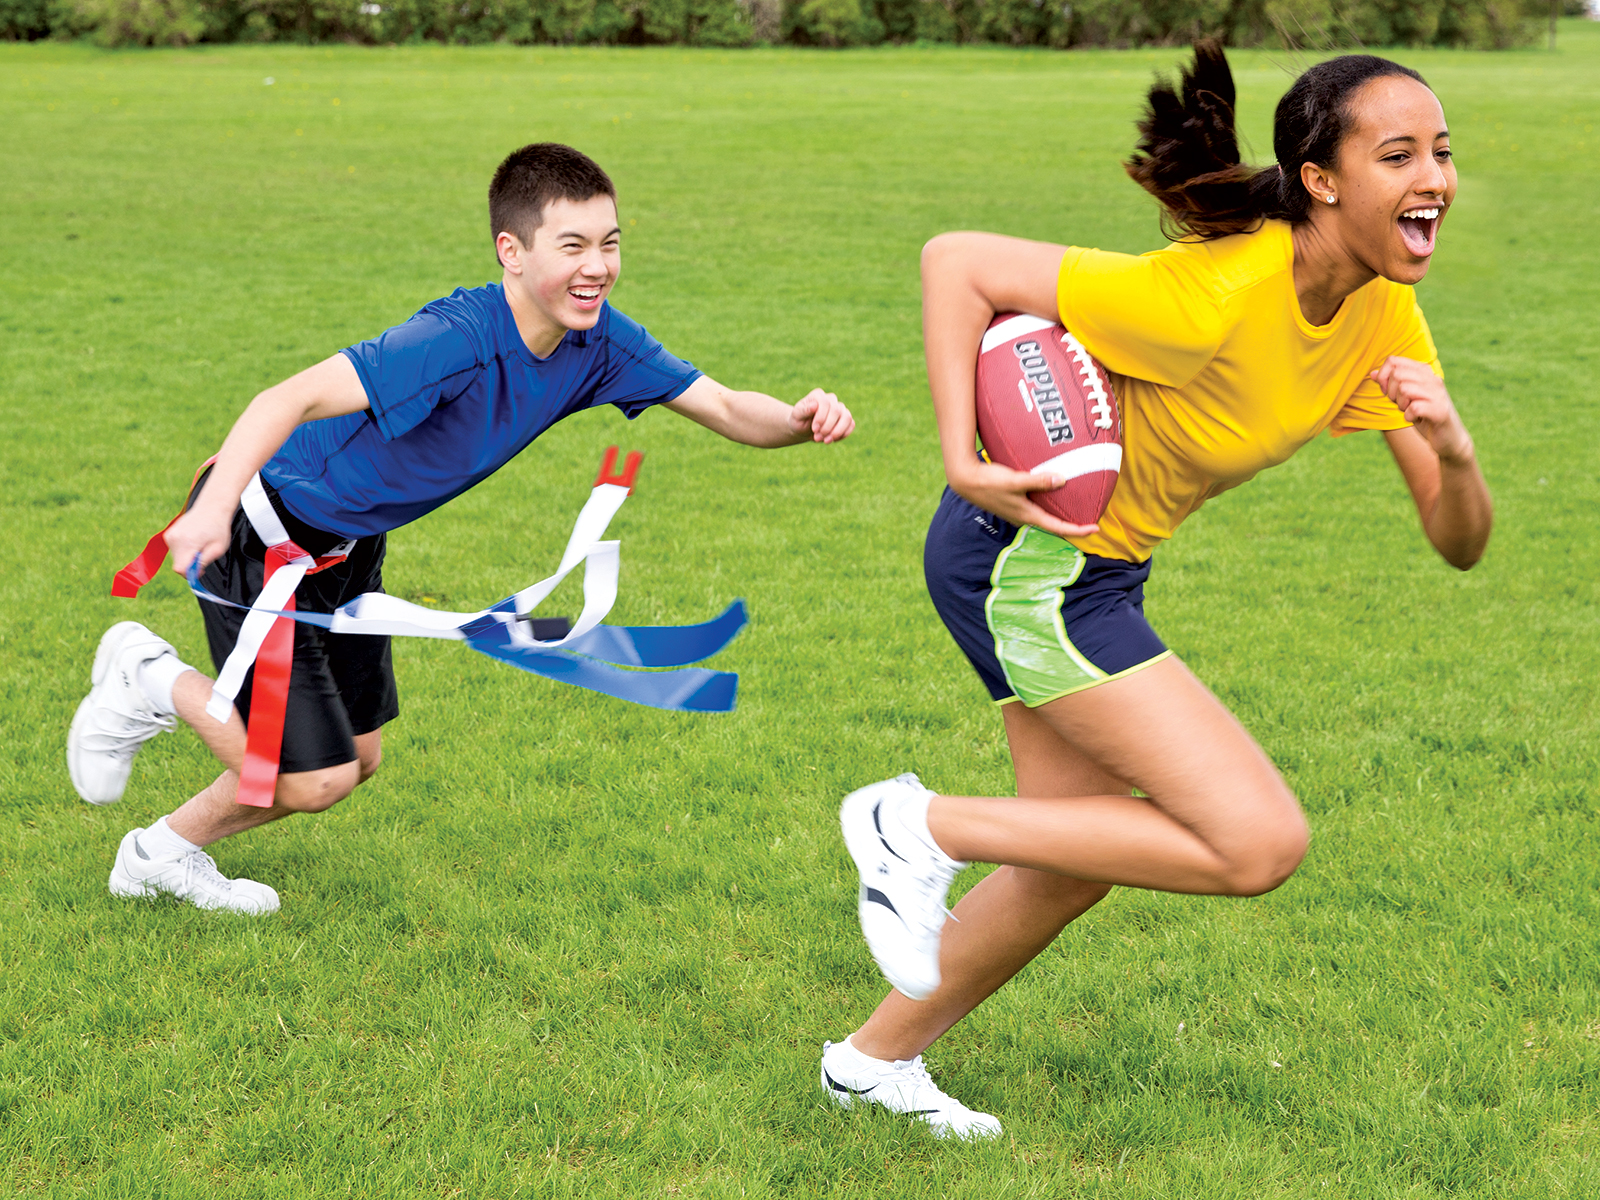 Boy chasing after girl while playing flag football